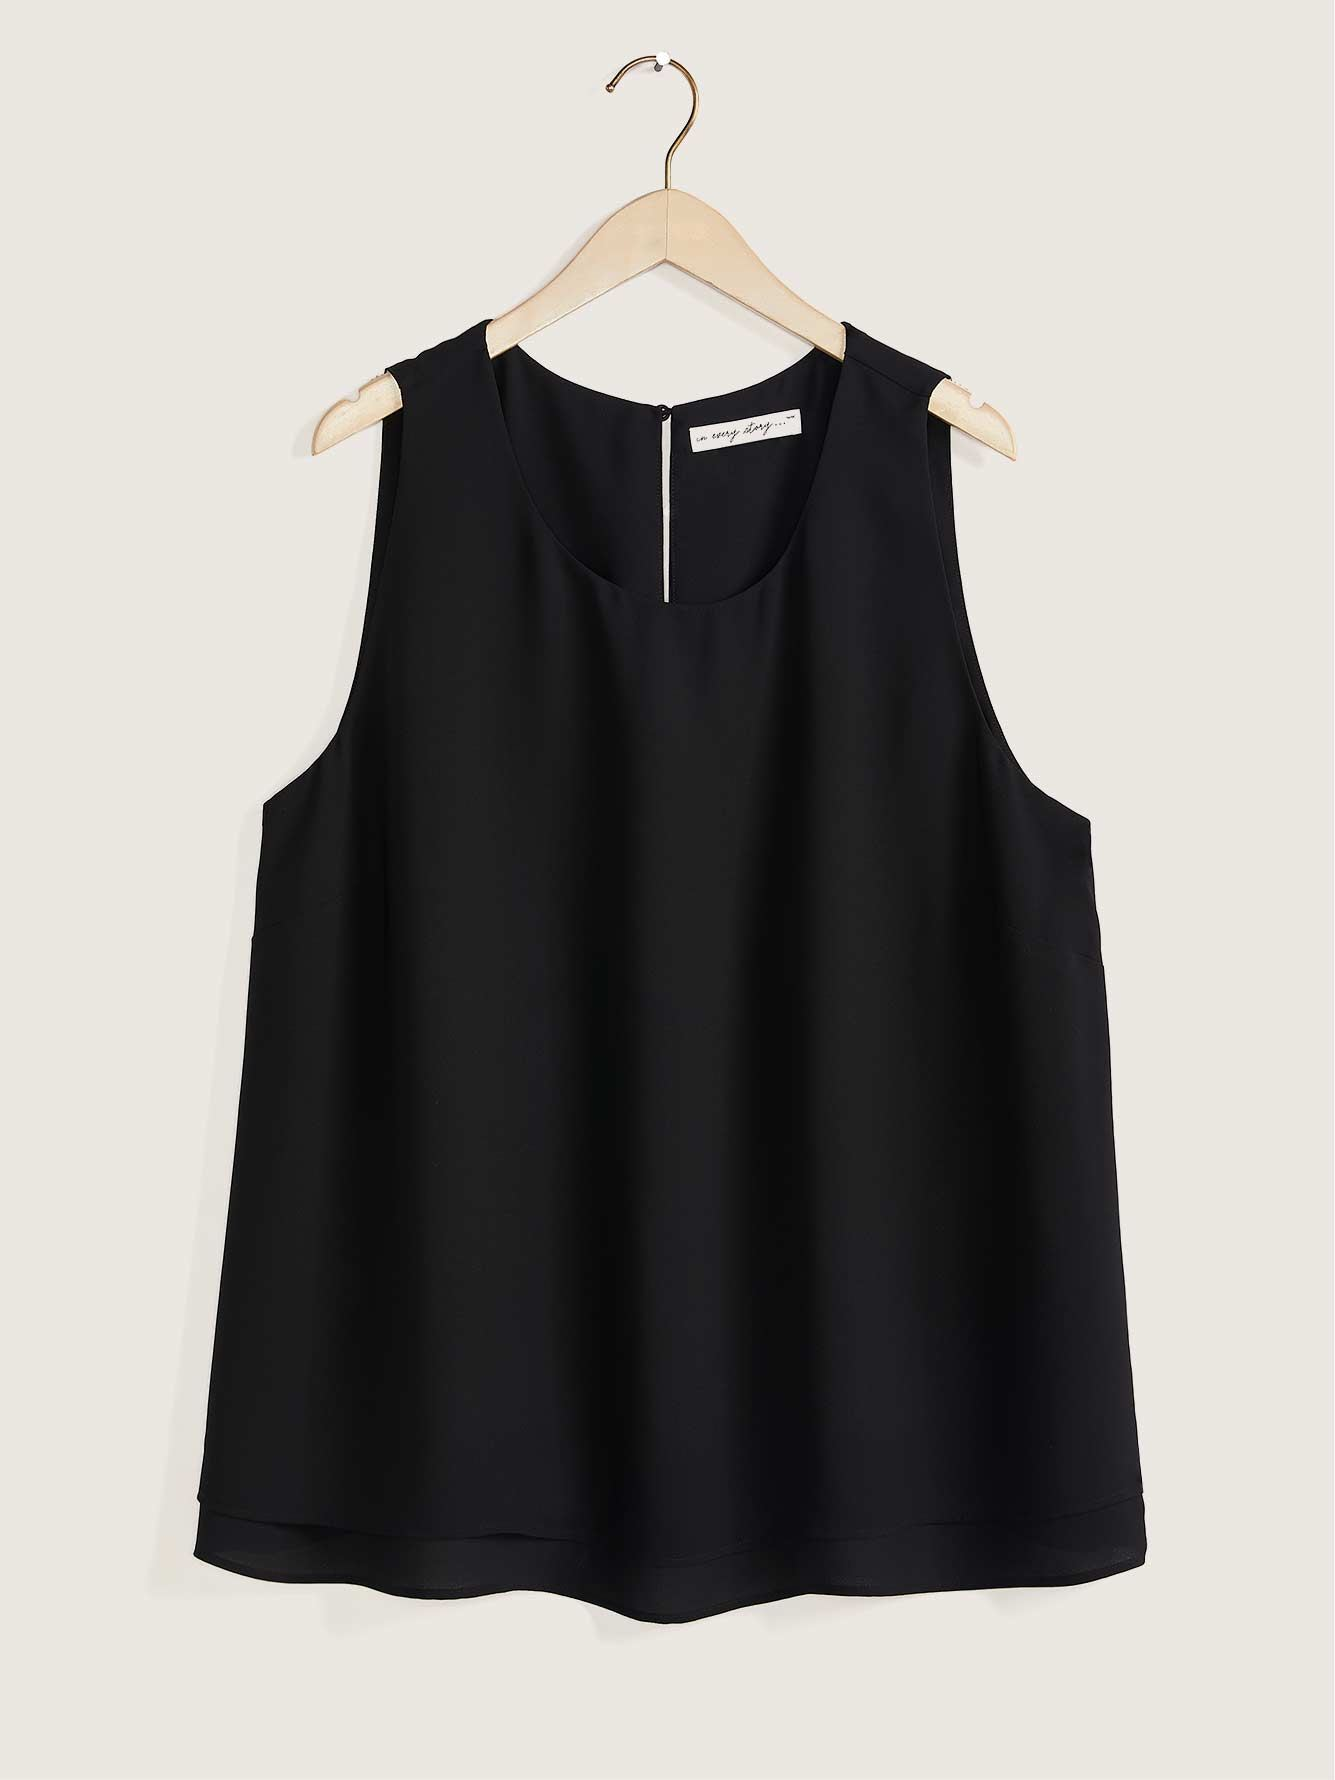 Responsible Sleeveless Blouse With Underpinning - In Every Story